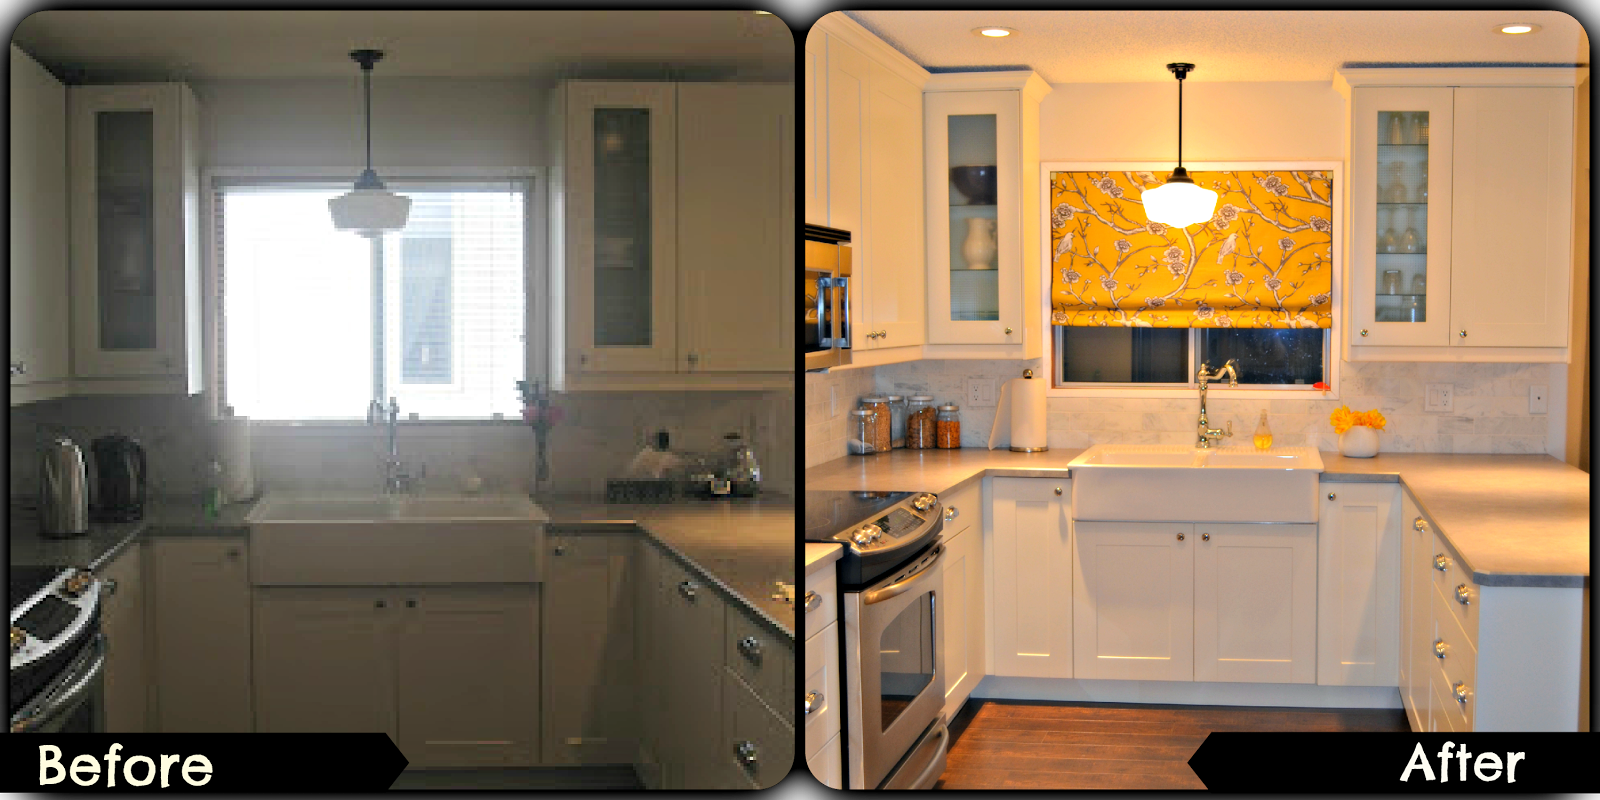 Crown molding on kitchen cabinets before and after - We Purchased Crown Moulding From The Hardware Store And Decided That Nailing A Narrow Board To The Top Of The Cabinets Would Be A Creative Way To Attach The